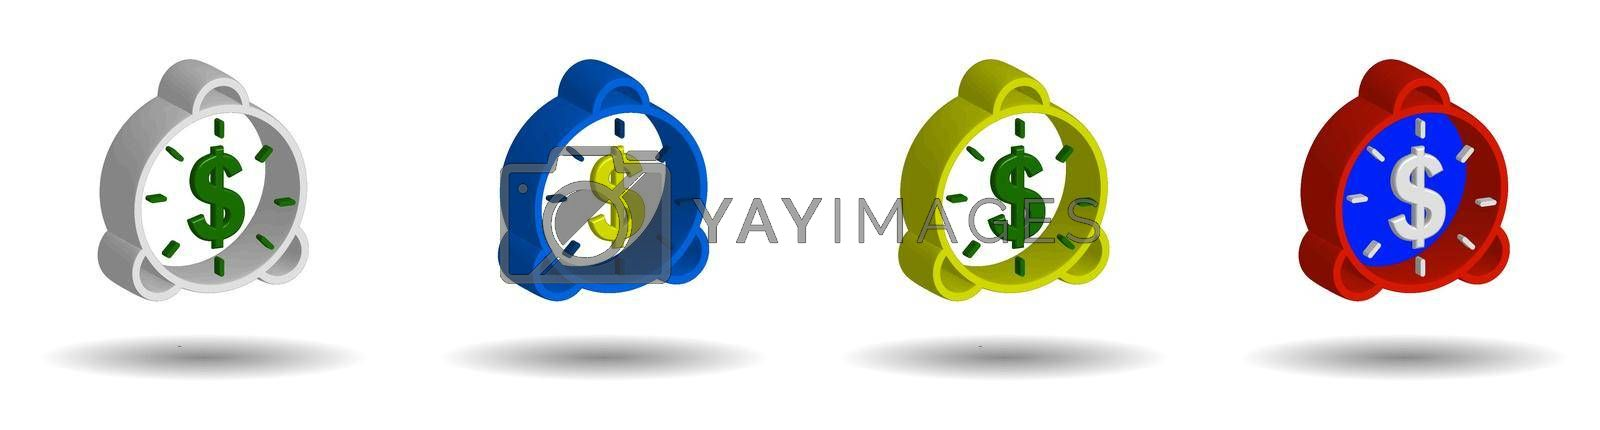 Royalty free image of set of multi-colored alarm clocks in 3D style with us dollar sign on a transparent background by RNko